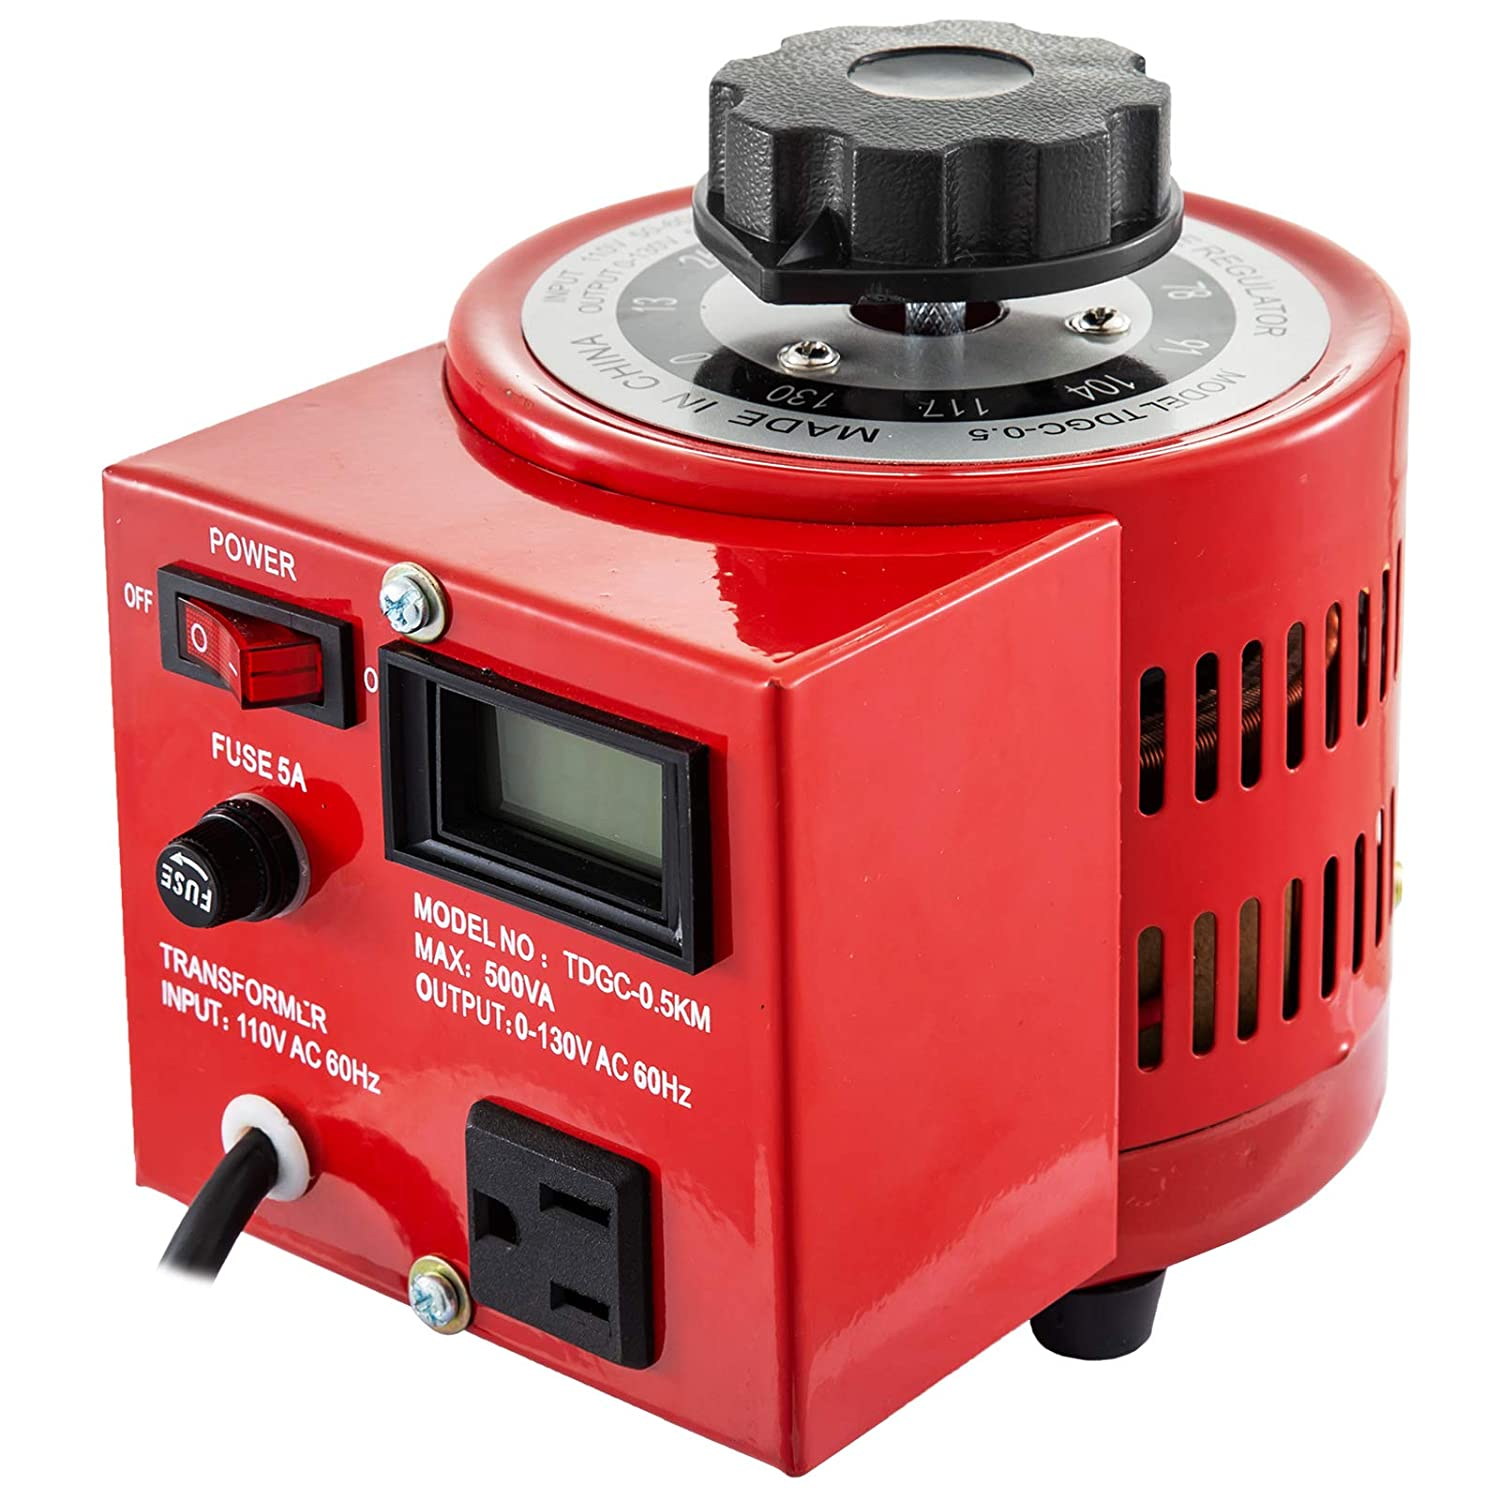 New color Mophorn 500VA Variable Transformer 110V New product type 60Hz Voltage Digit Input